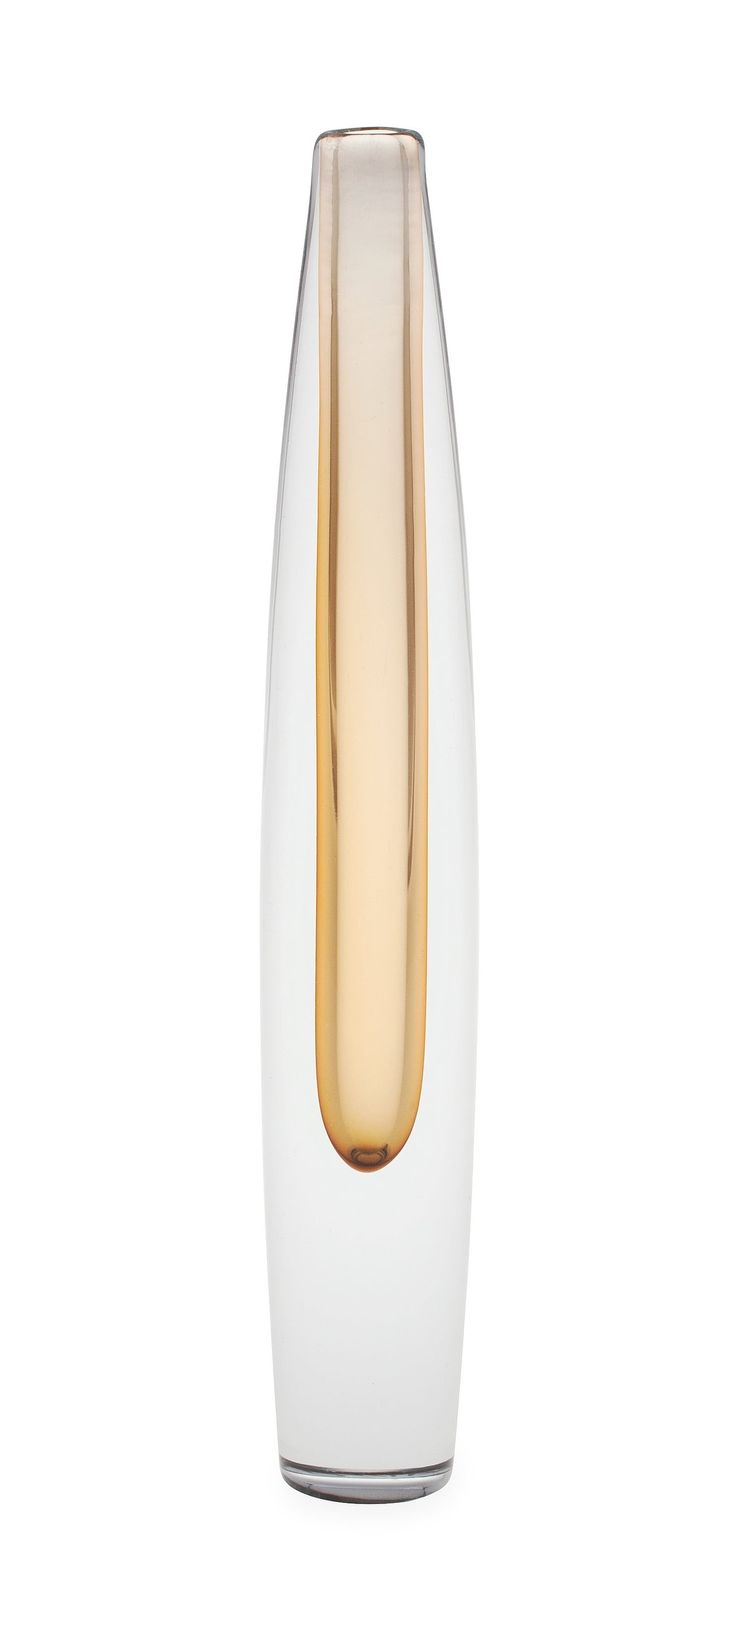 Tapio Wirkkala, Vase, signed Tapio Wirkkala, Iittala 3221. Clear and brown-yellowish cased glass.